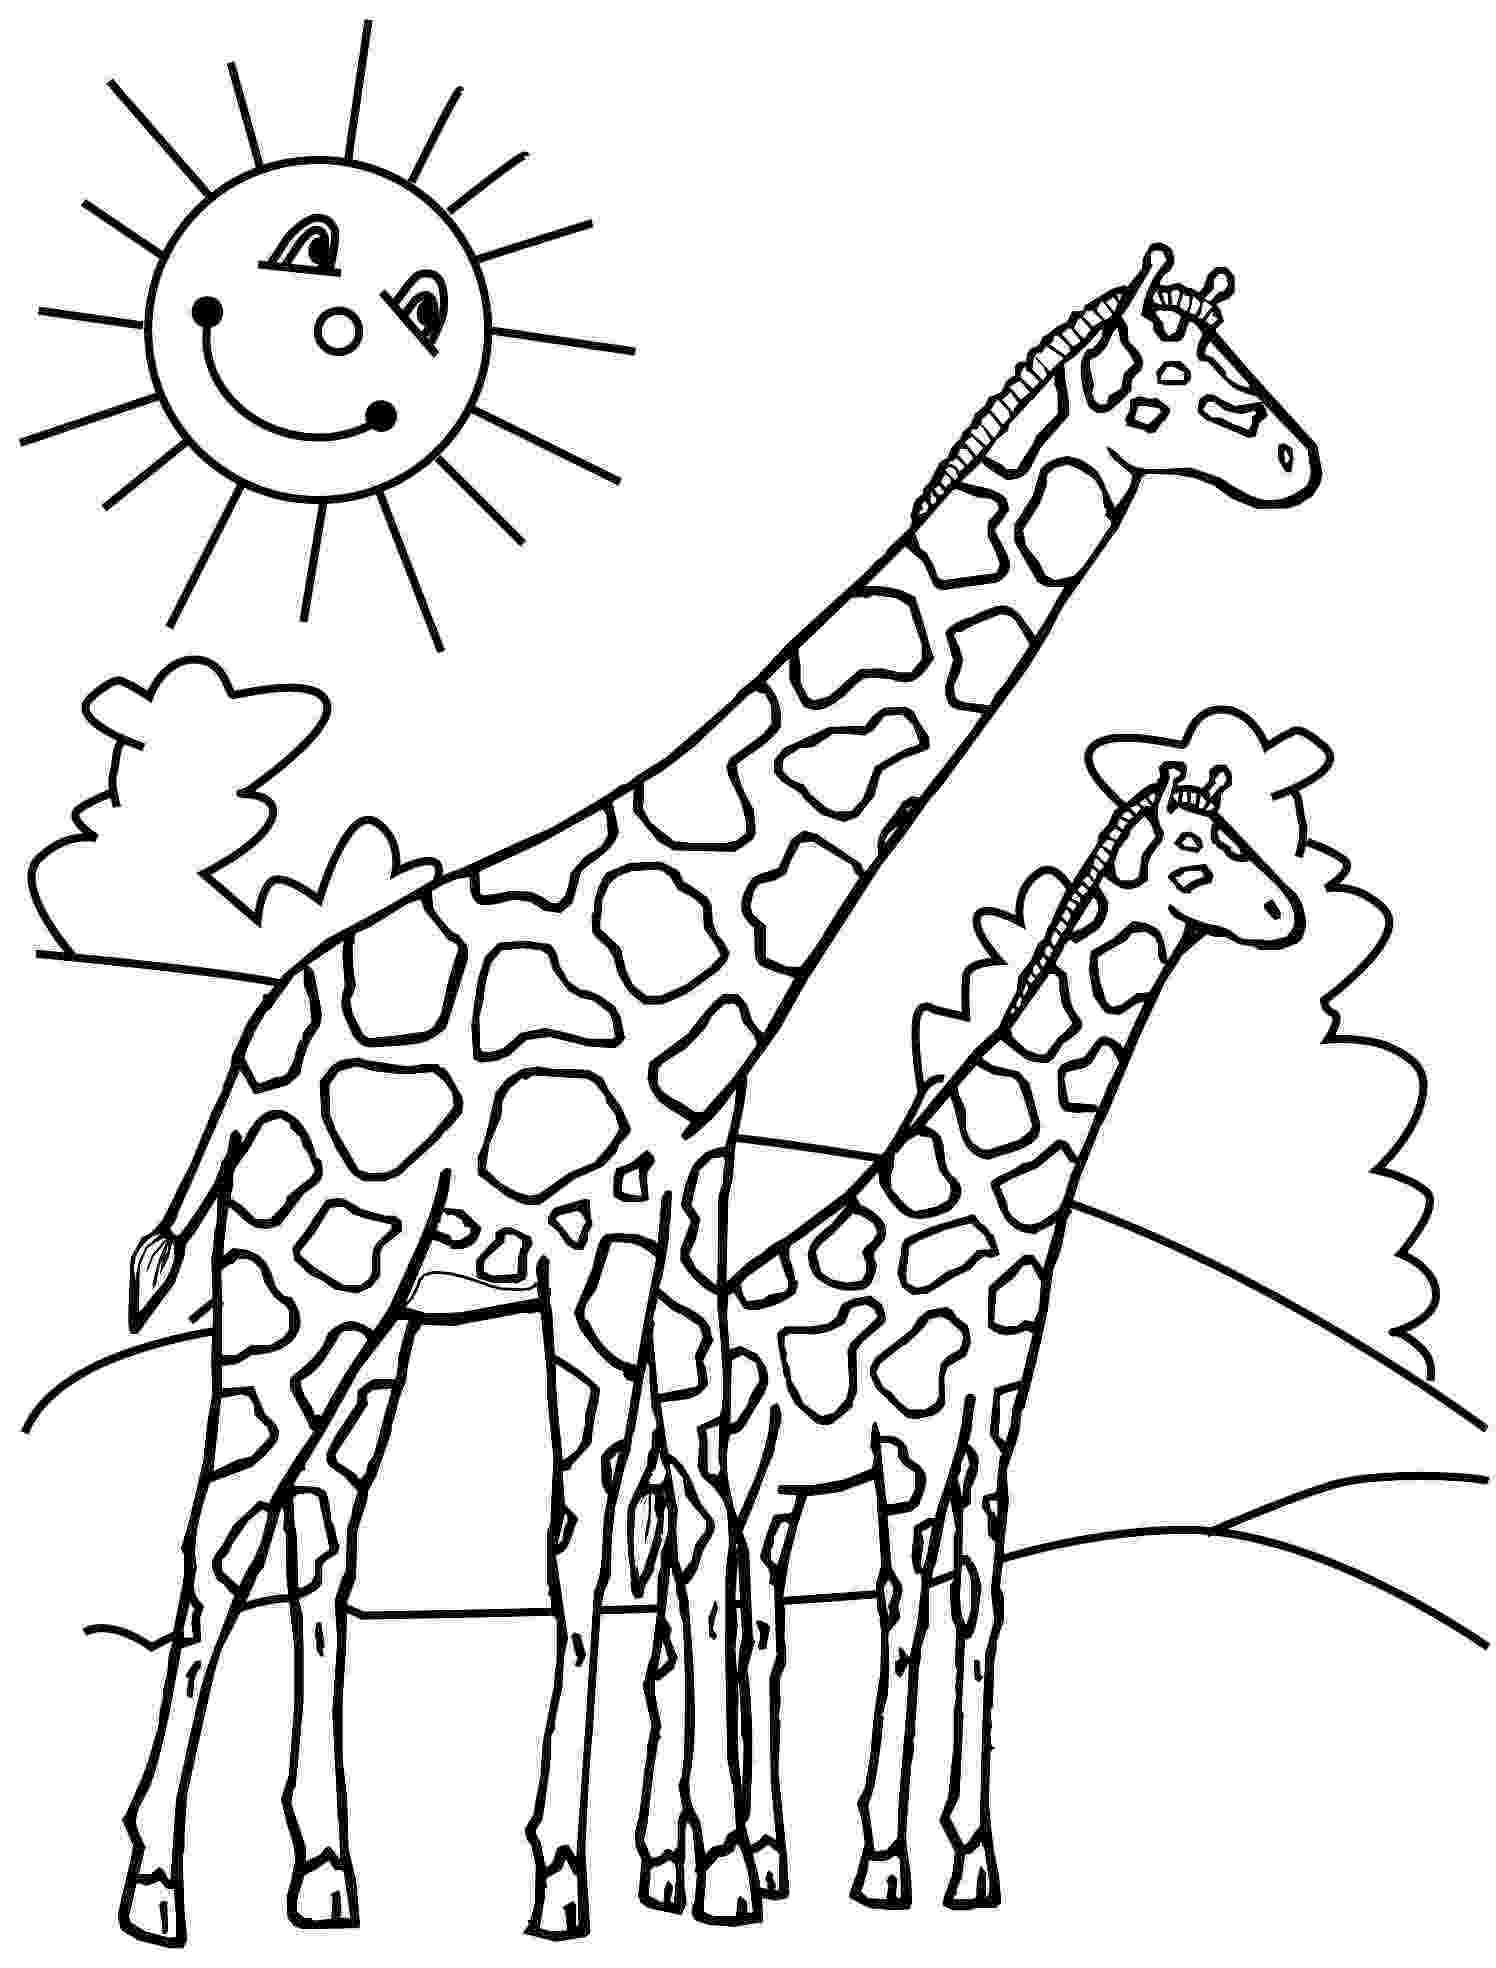 coloring page giraffe coloring pages for kids giraffe coloring pages for kids page giraffe coloring